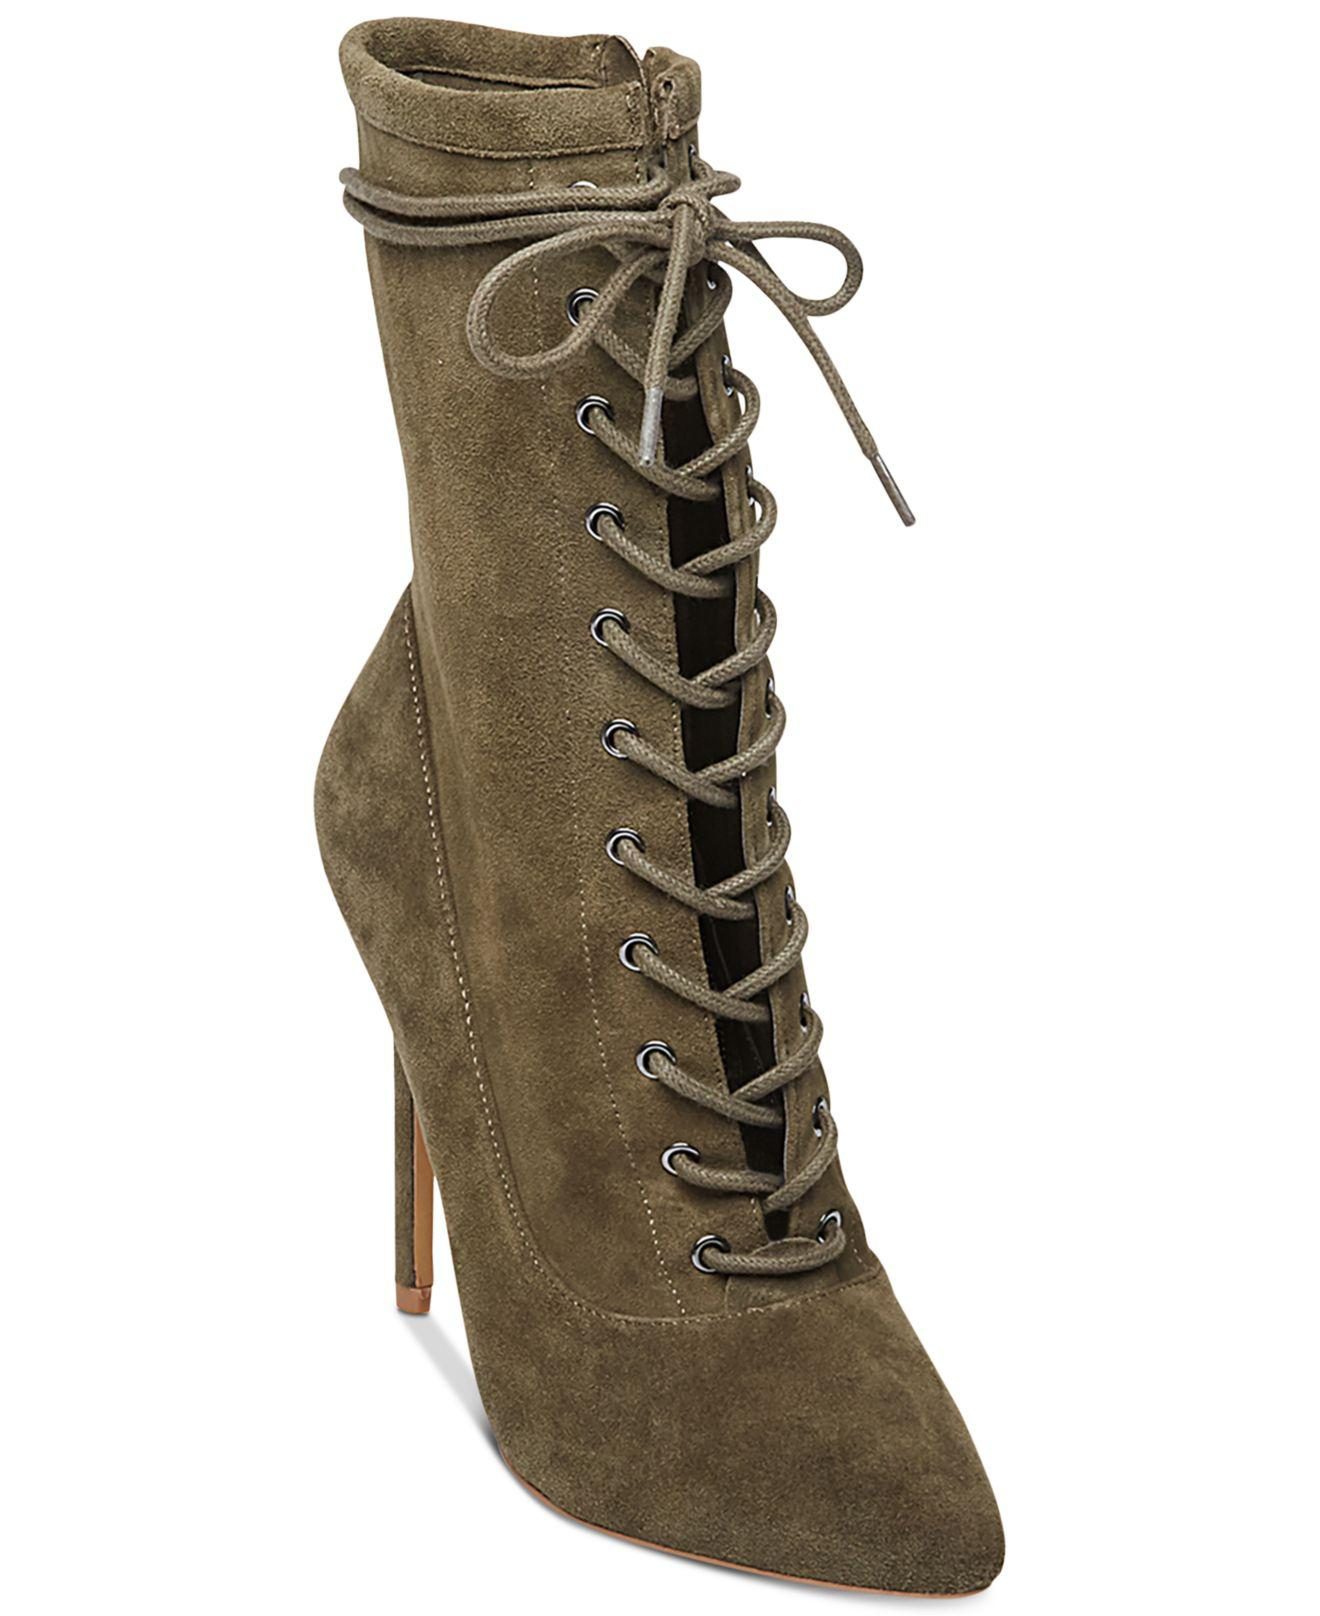 80b063a170a Steve Madden Women s Satisfied Lace-up Stiletto Booties in Green - Lyst